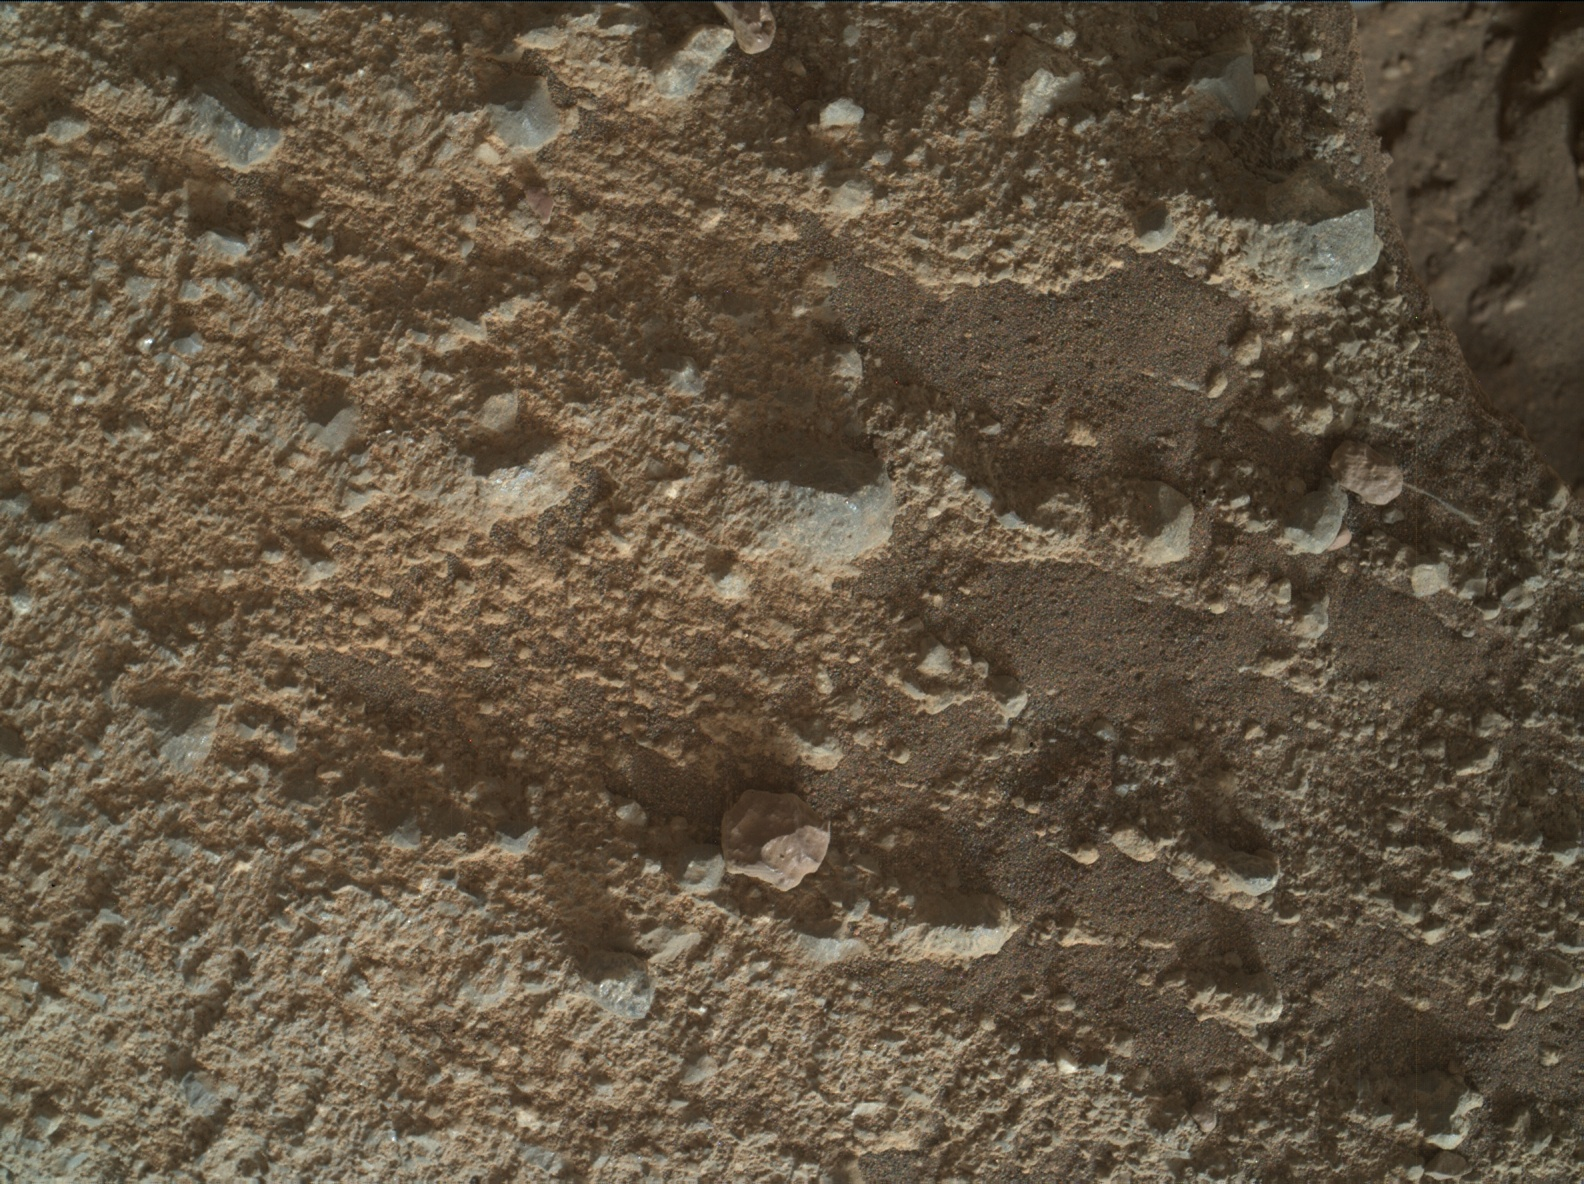 Nasa's Mars rover Curiosity acquired this image using its Mars Hand Lens Imager (MAHLI) on Sol 2022